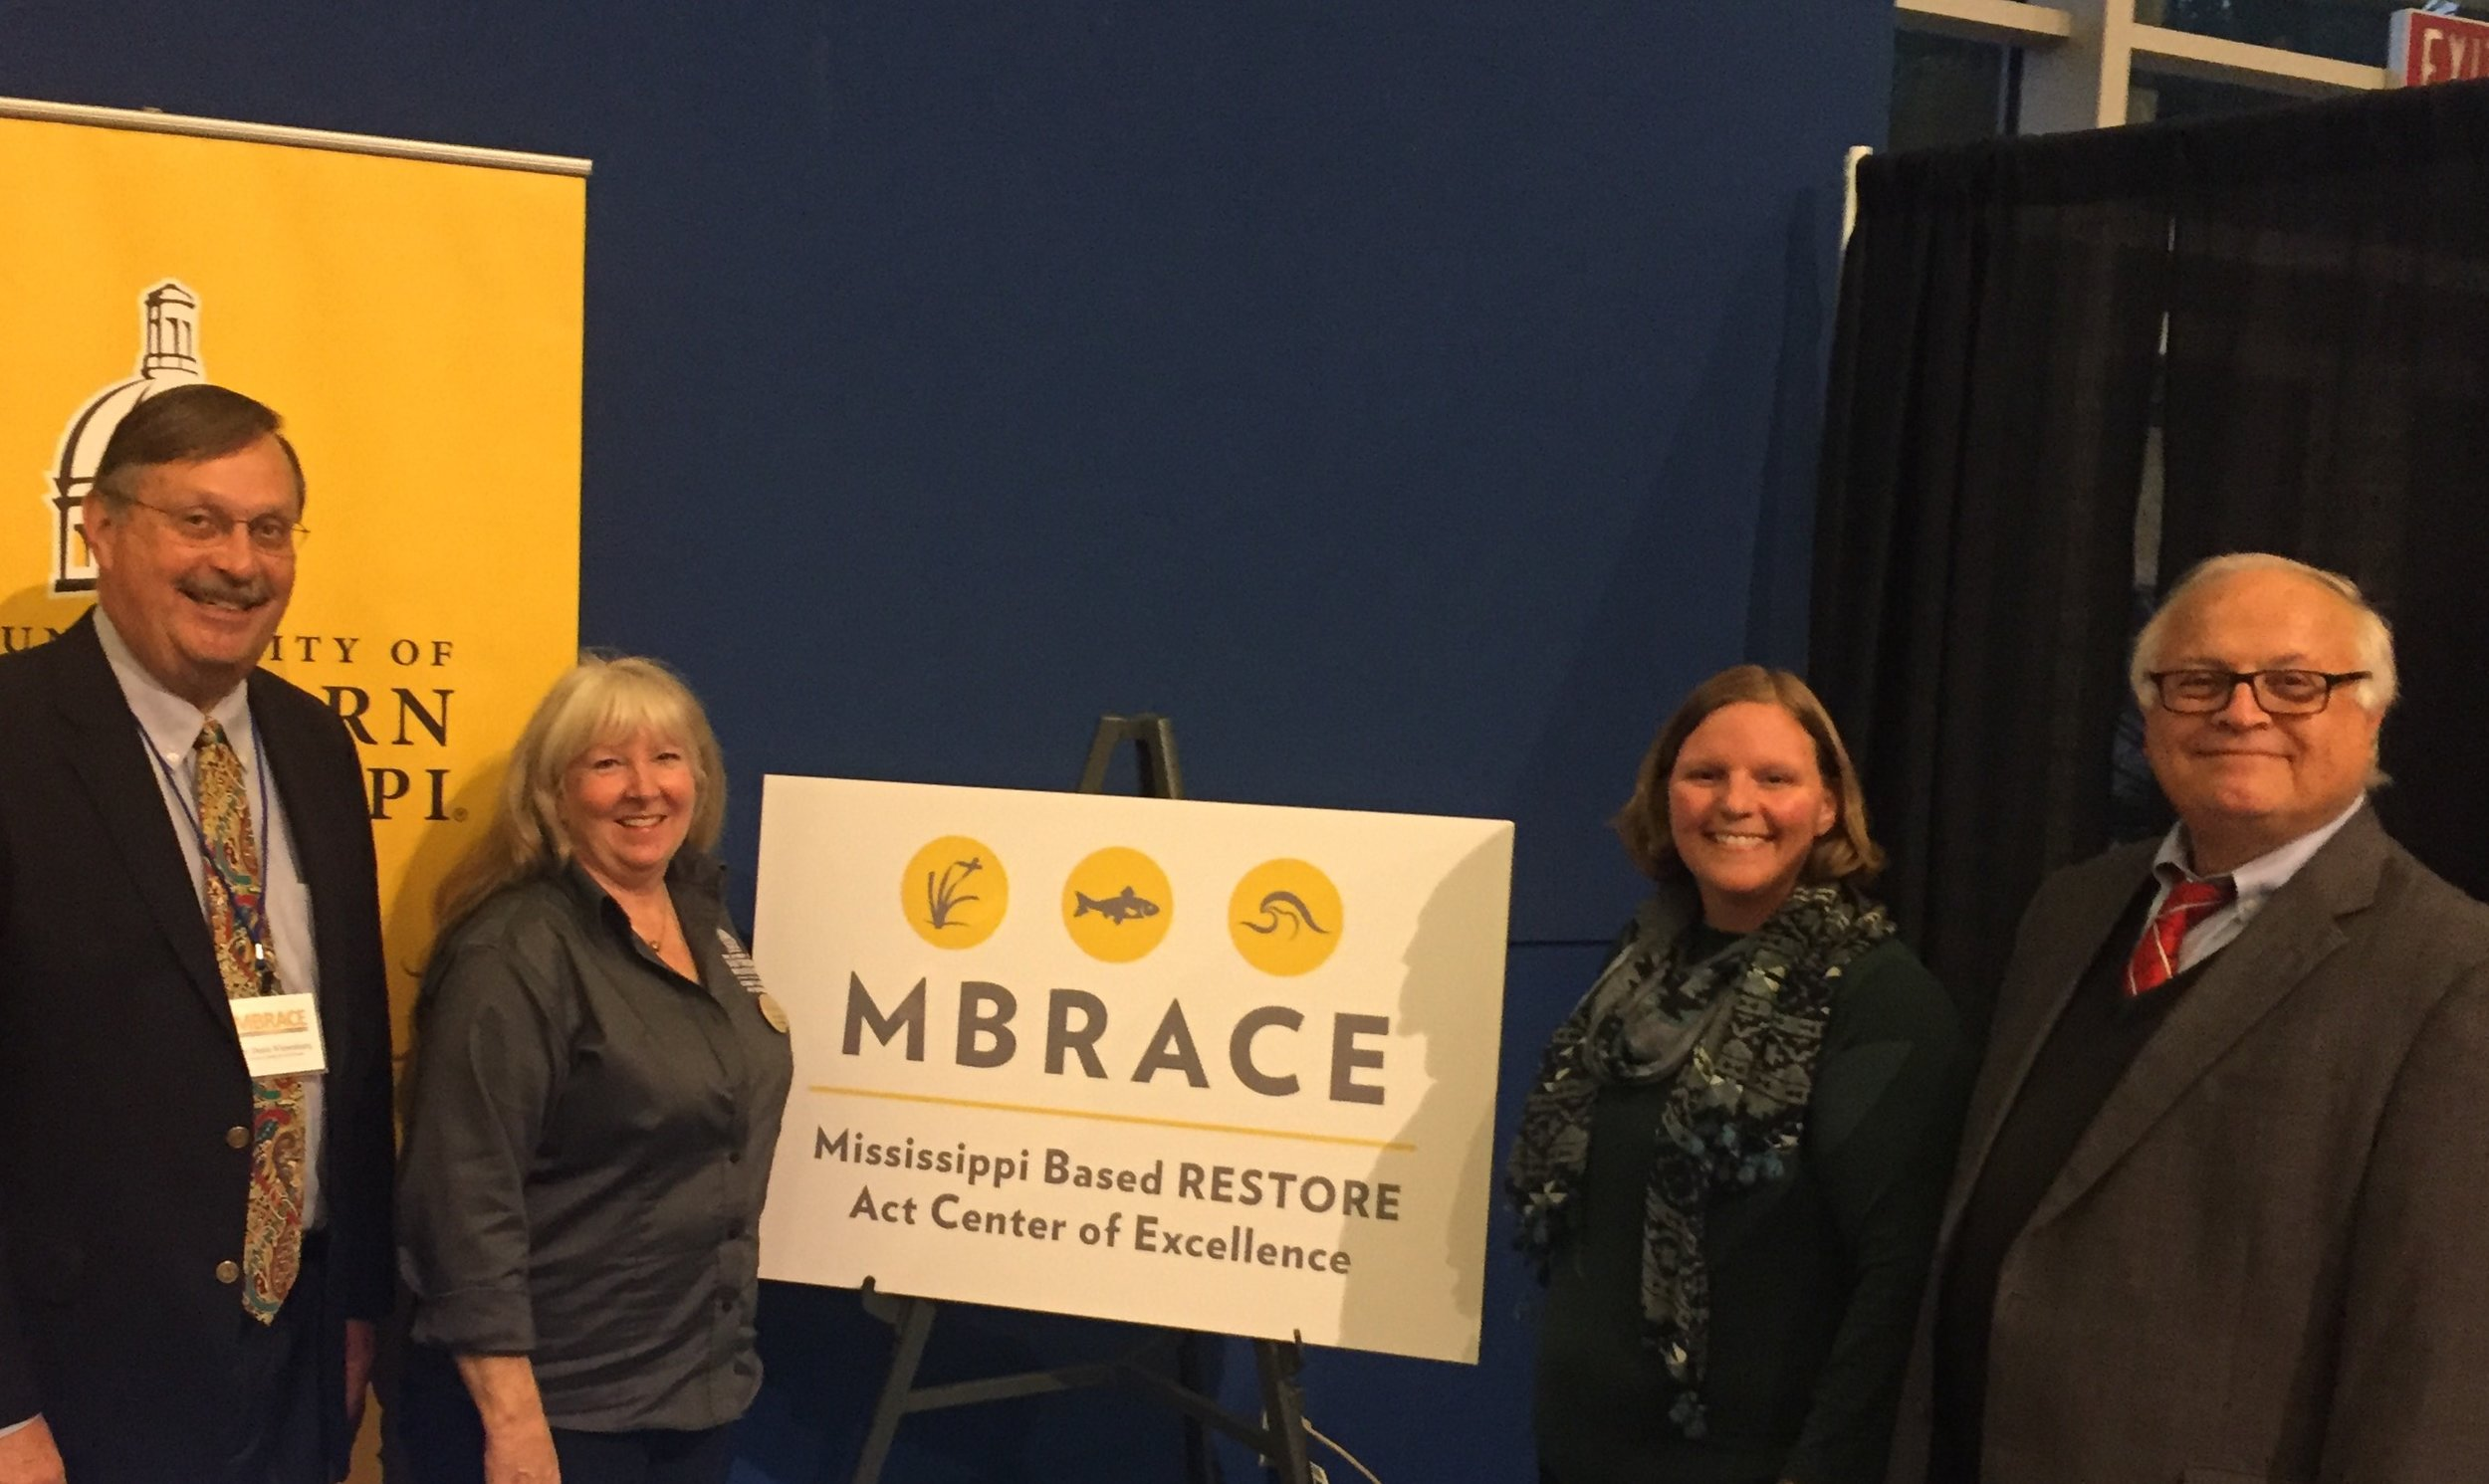 MBRACE administrators at the 2017 Mississippi Restoration Summit. From left to right: Denis Wiesenburg, Diana Lovejoy, Kelly Darnell, Landry Bernard